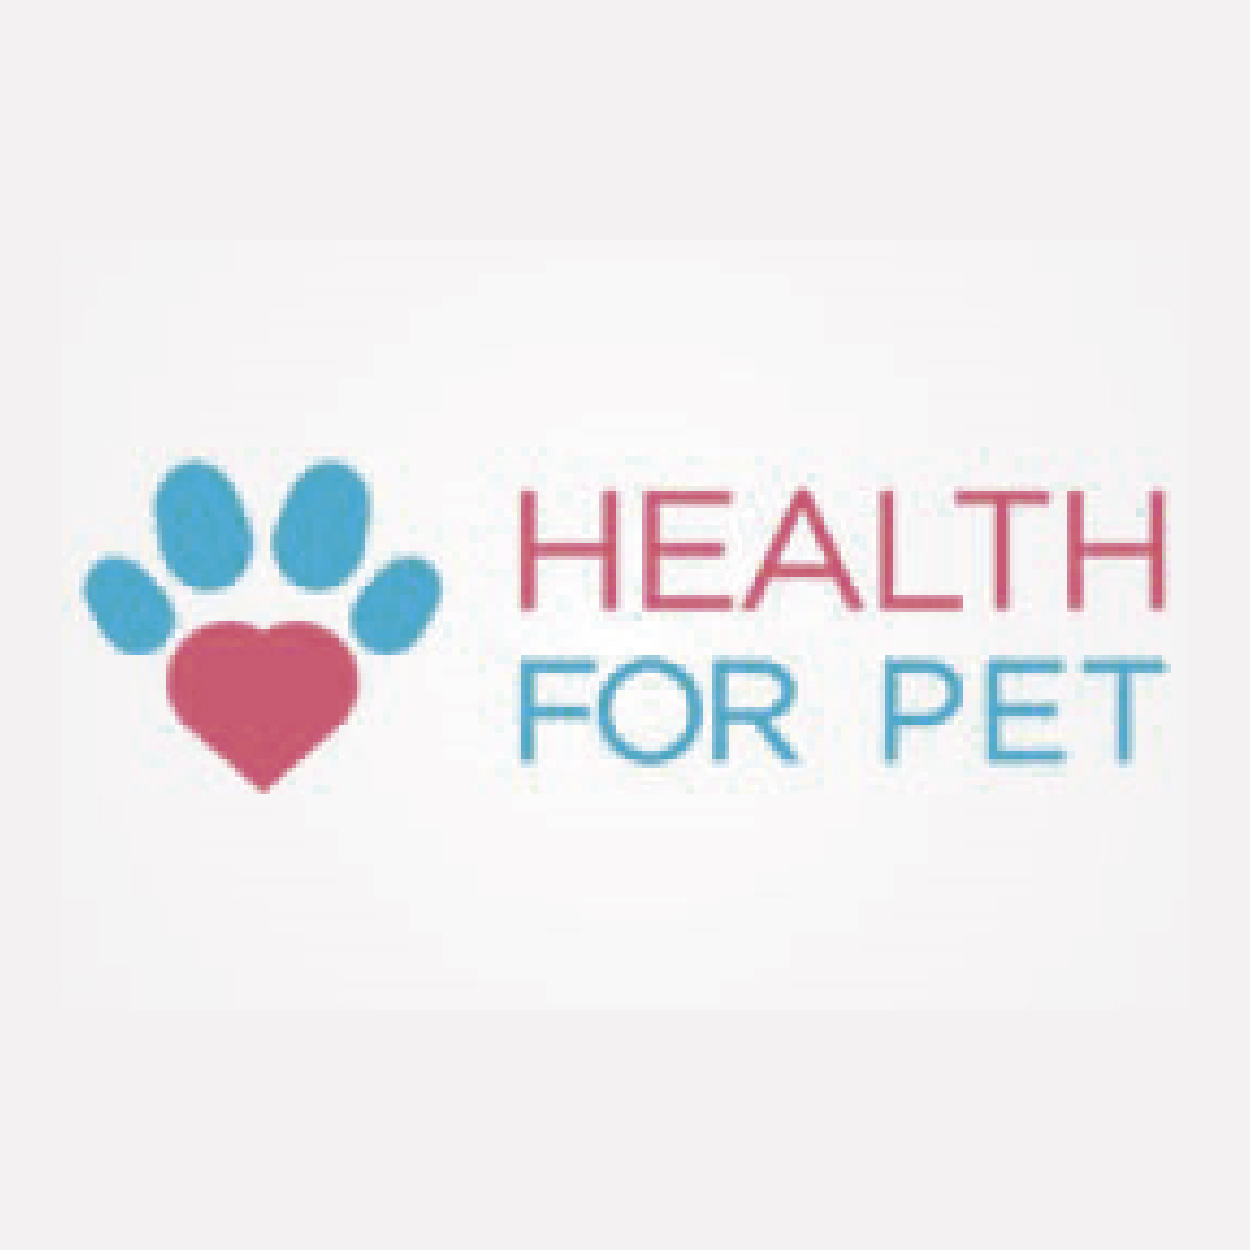 Healh For Pet